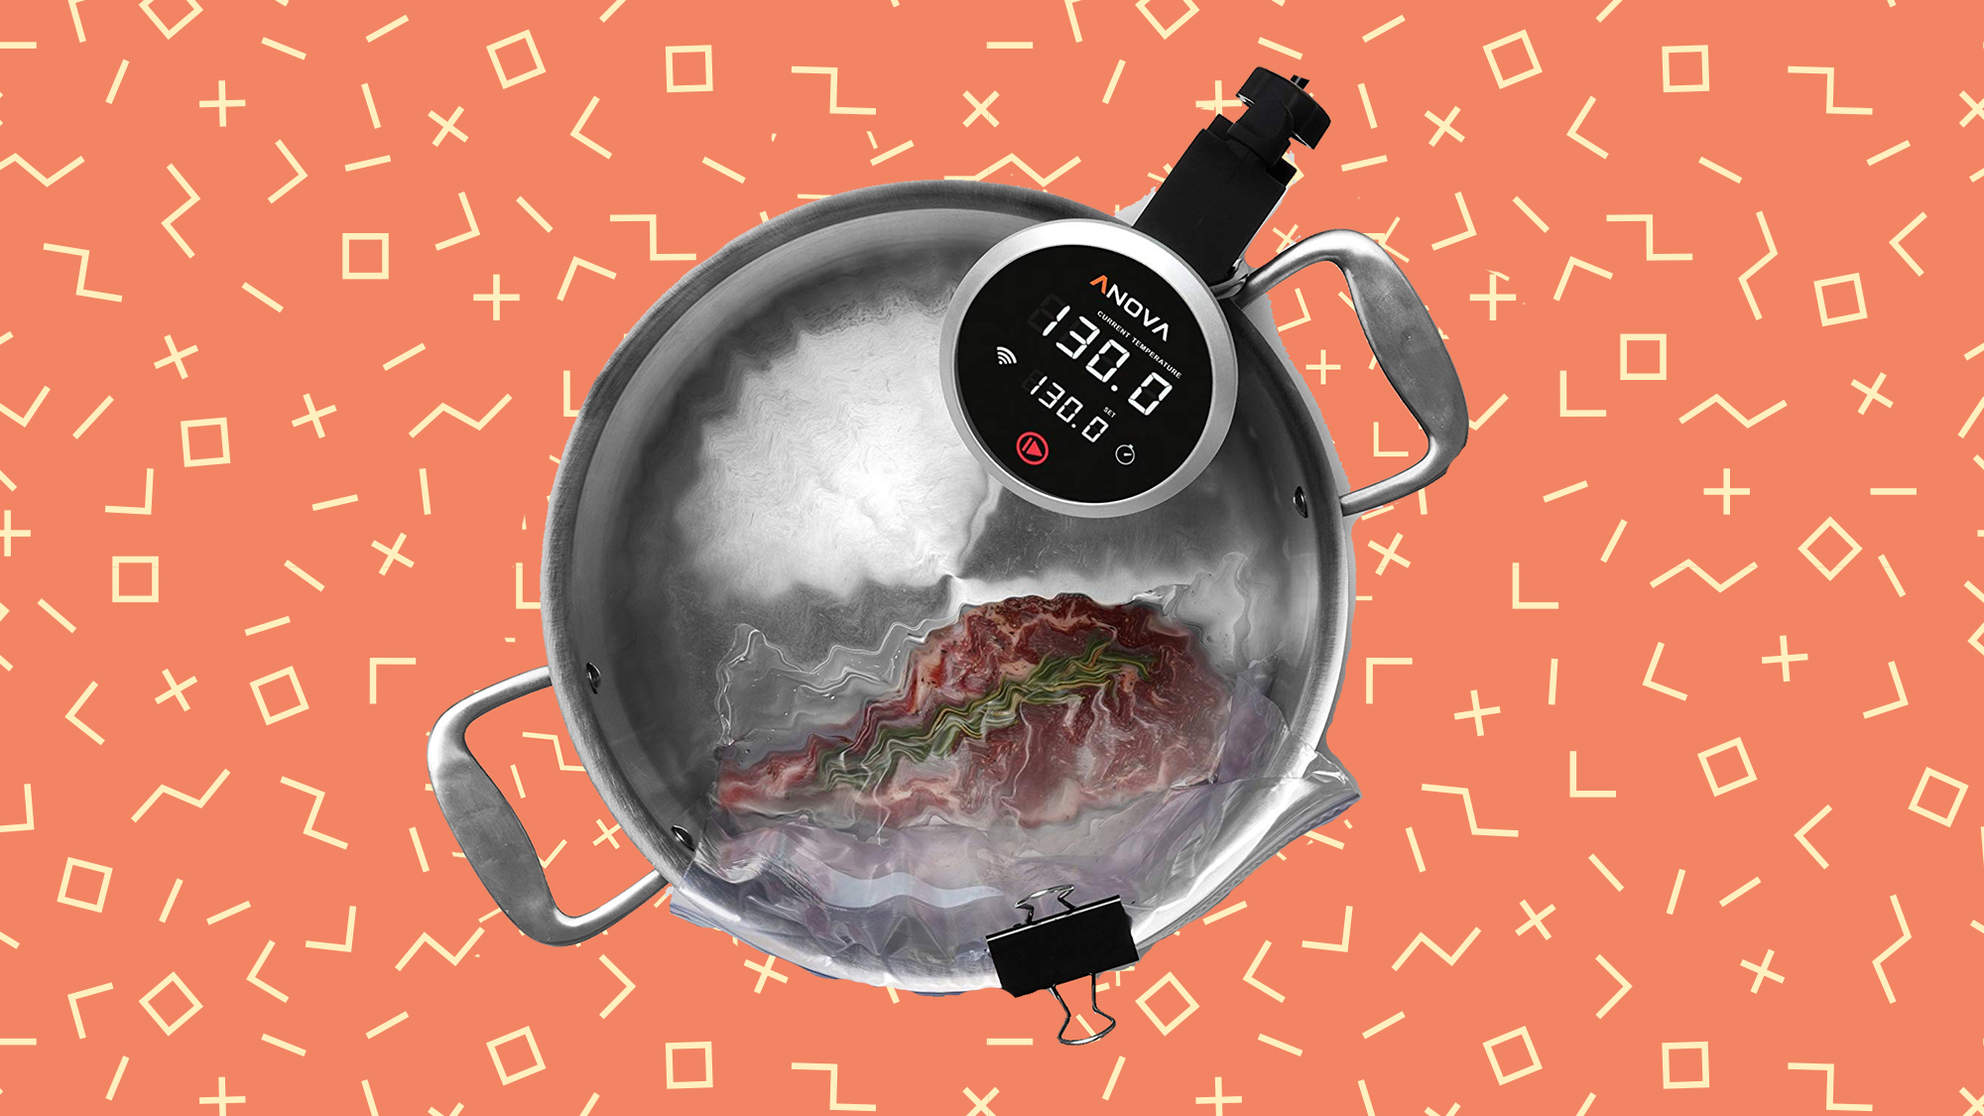 This Sous Vide Cooker Will Change the Way You Do Dinner